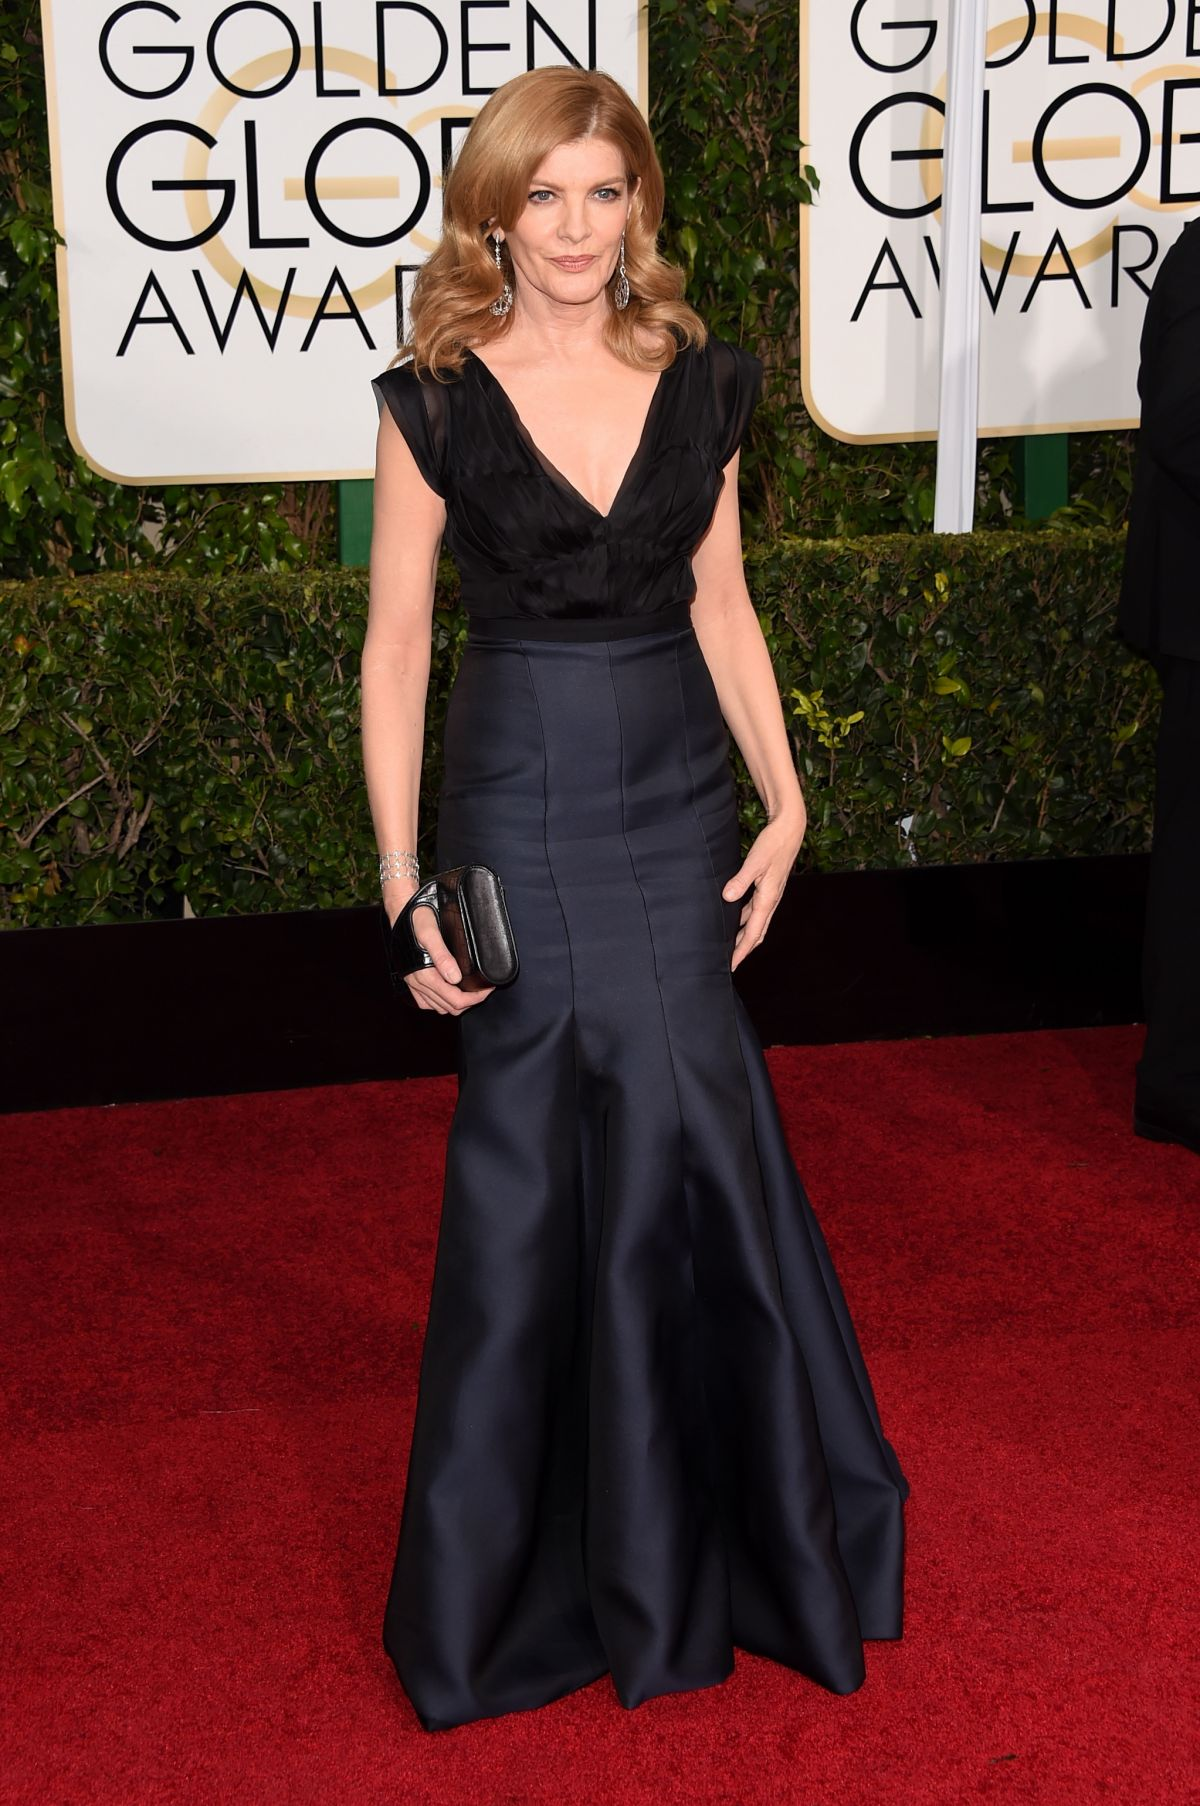 RENE RUSSO at 2015 Golden Globe Awards in Beverly Hills